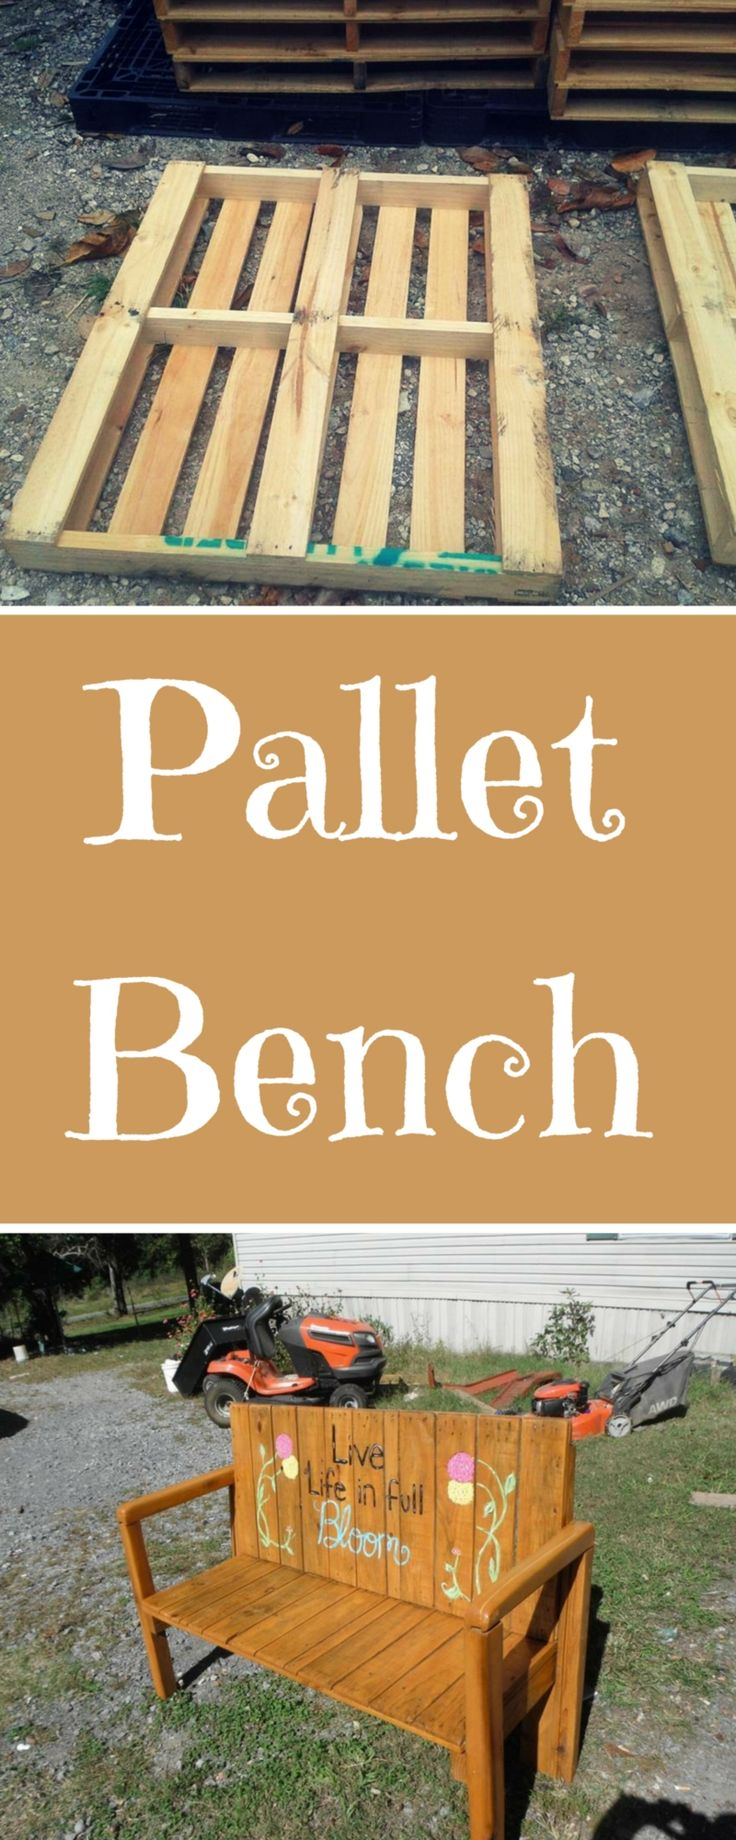 Before and After: Upcycled Pallet #Bench - 11 Unique Ideas - 101 Pallet Ideas